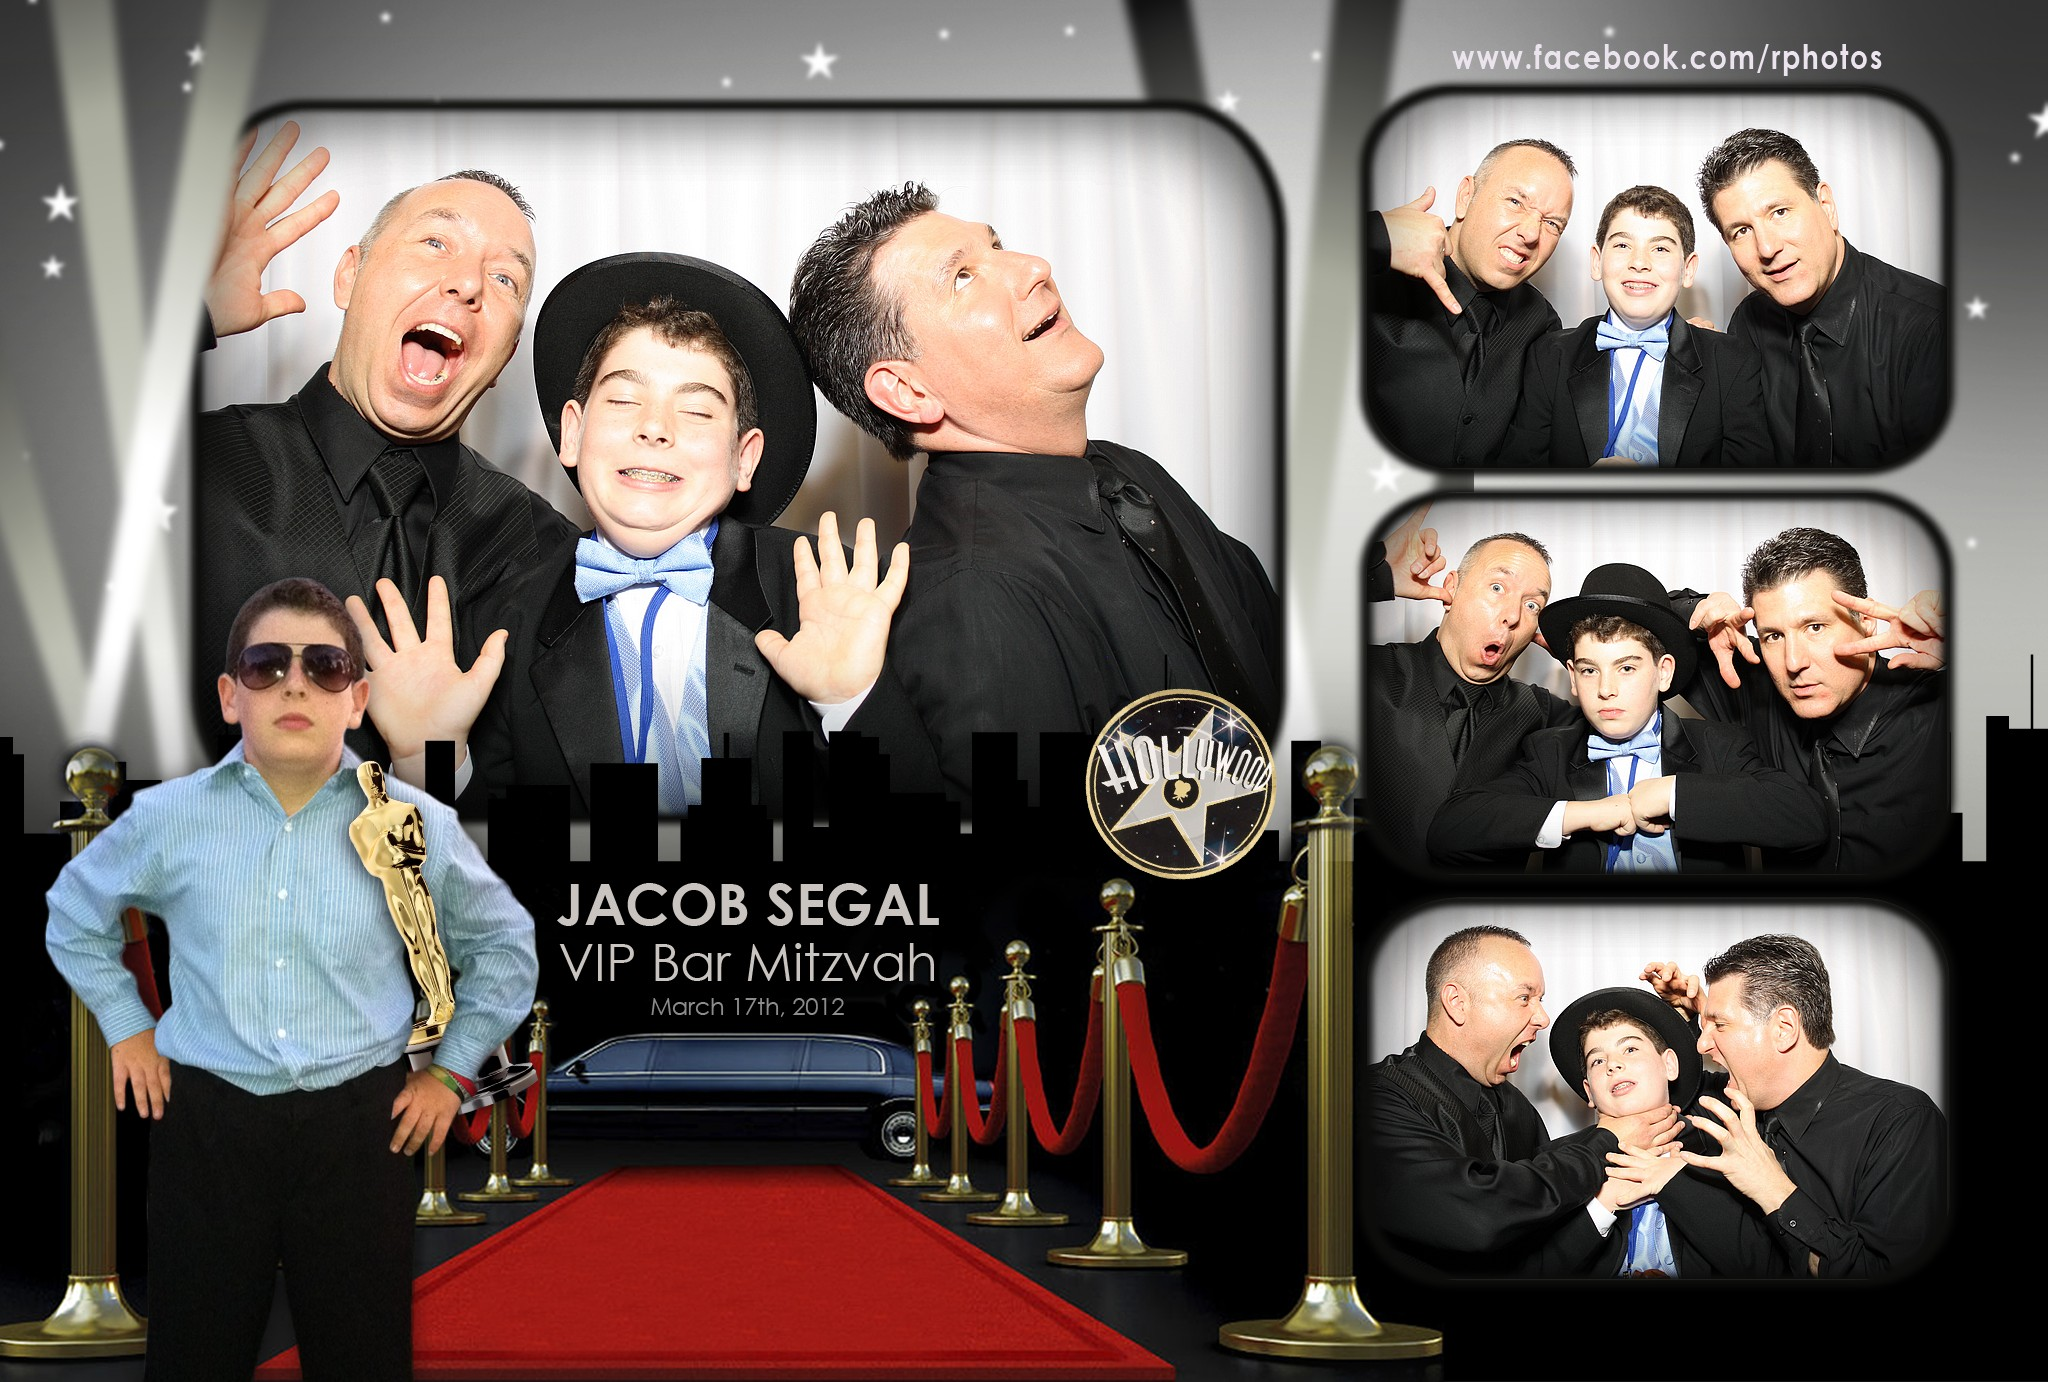 photo-booth-mitzvah-4.jpg